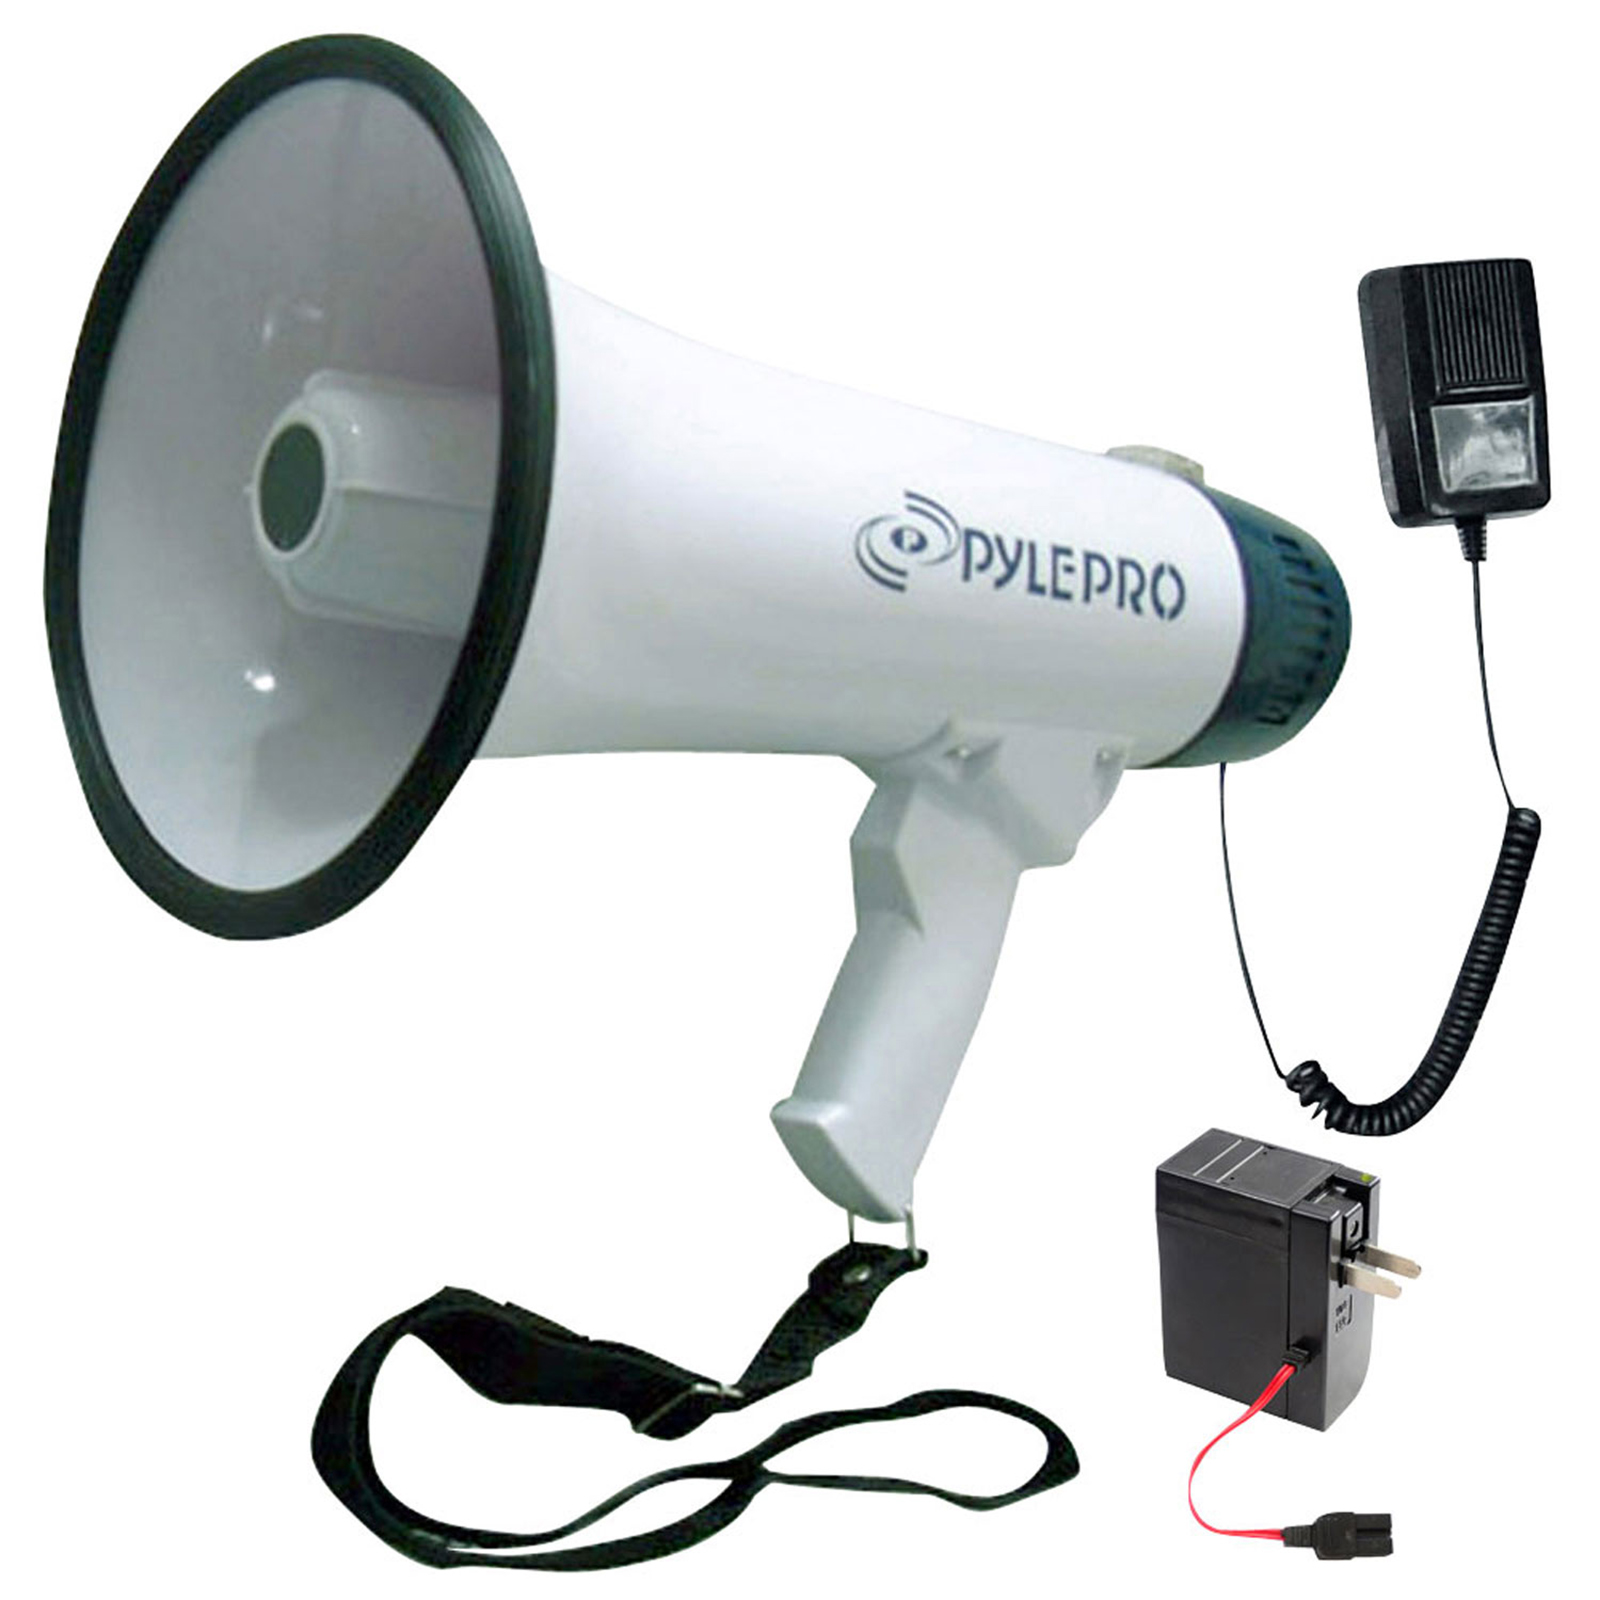 Pyle Professional Dynamic Megaphone With Recording Function/Detachable Microphone & Rechagable batteries